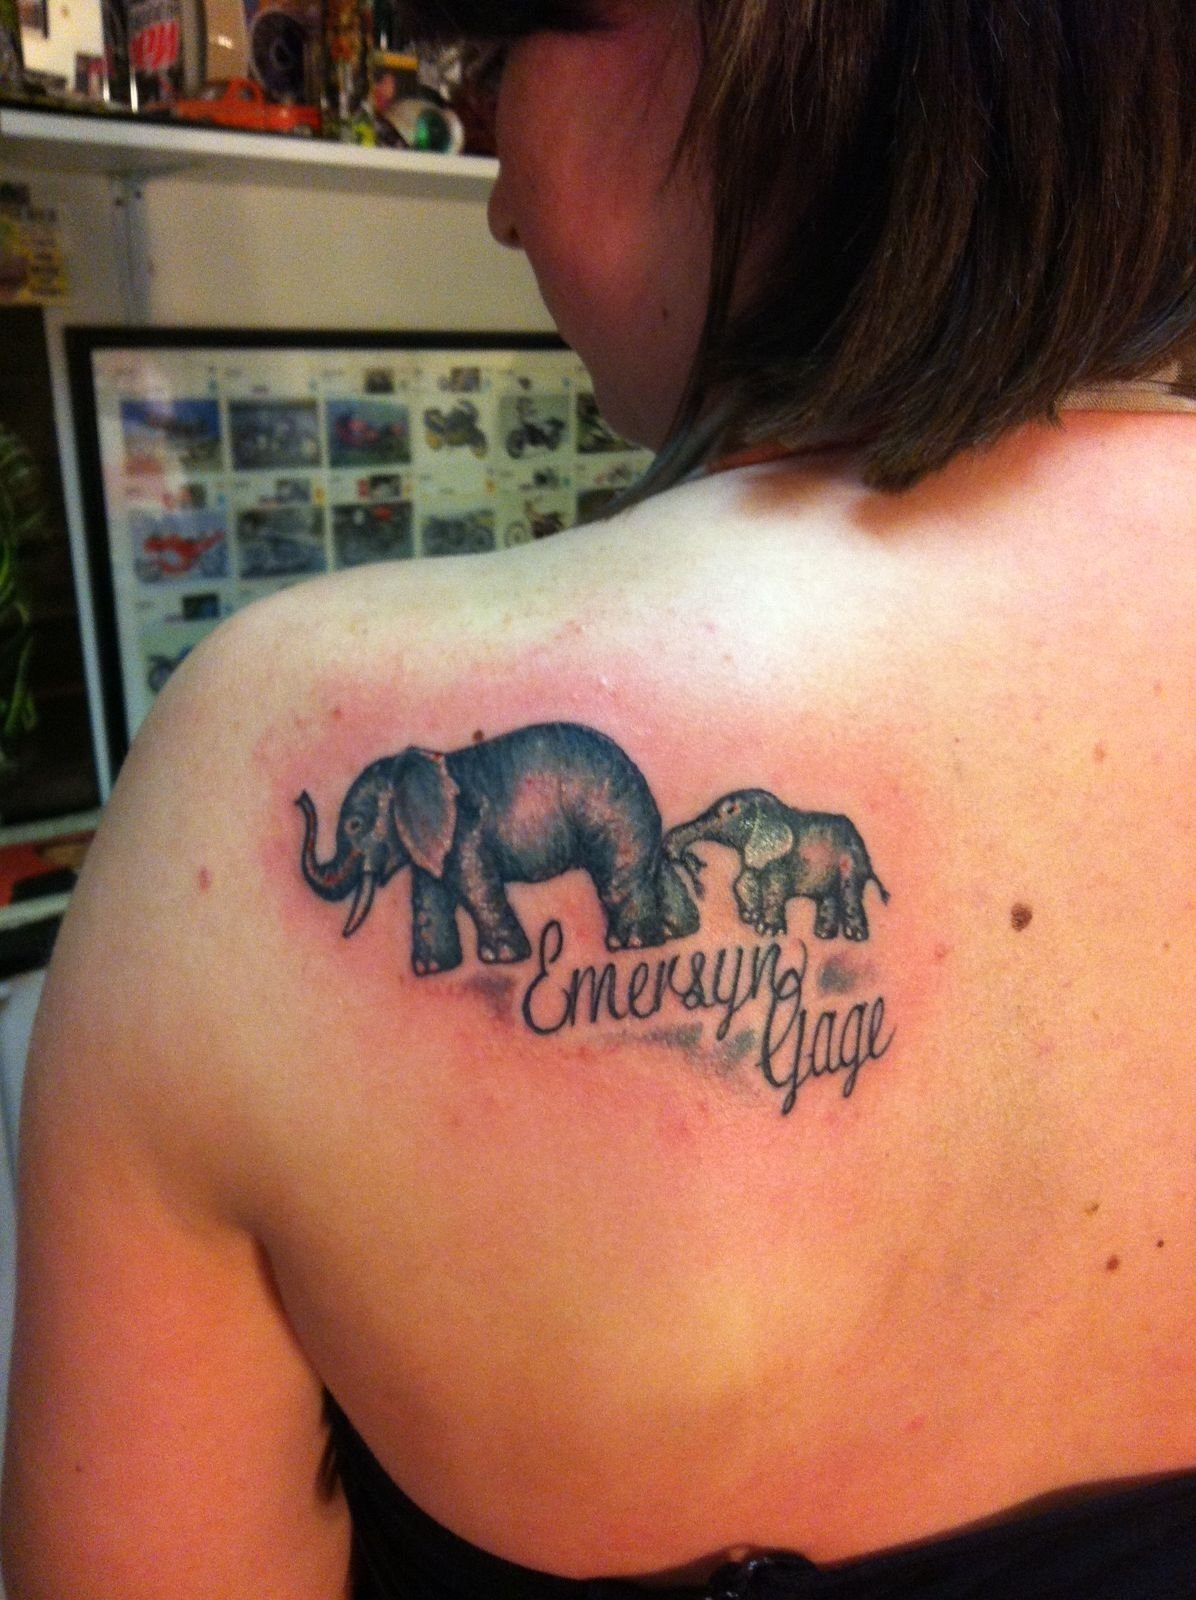 10 Most Popular Mom And Son Tattoo Ideas mother and son tattoo with name mother son tattoo pinterest 1 2021